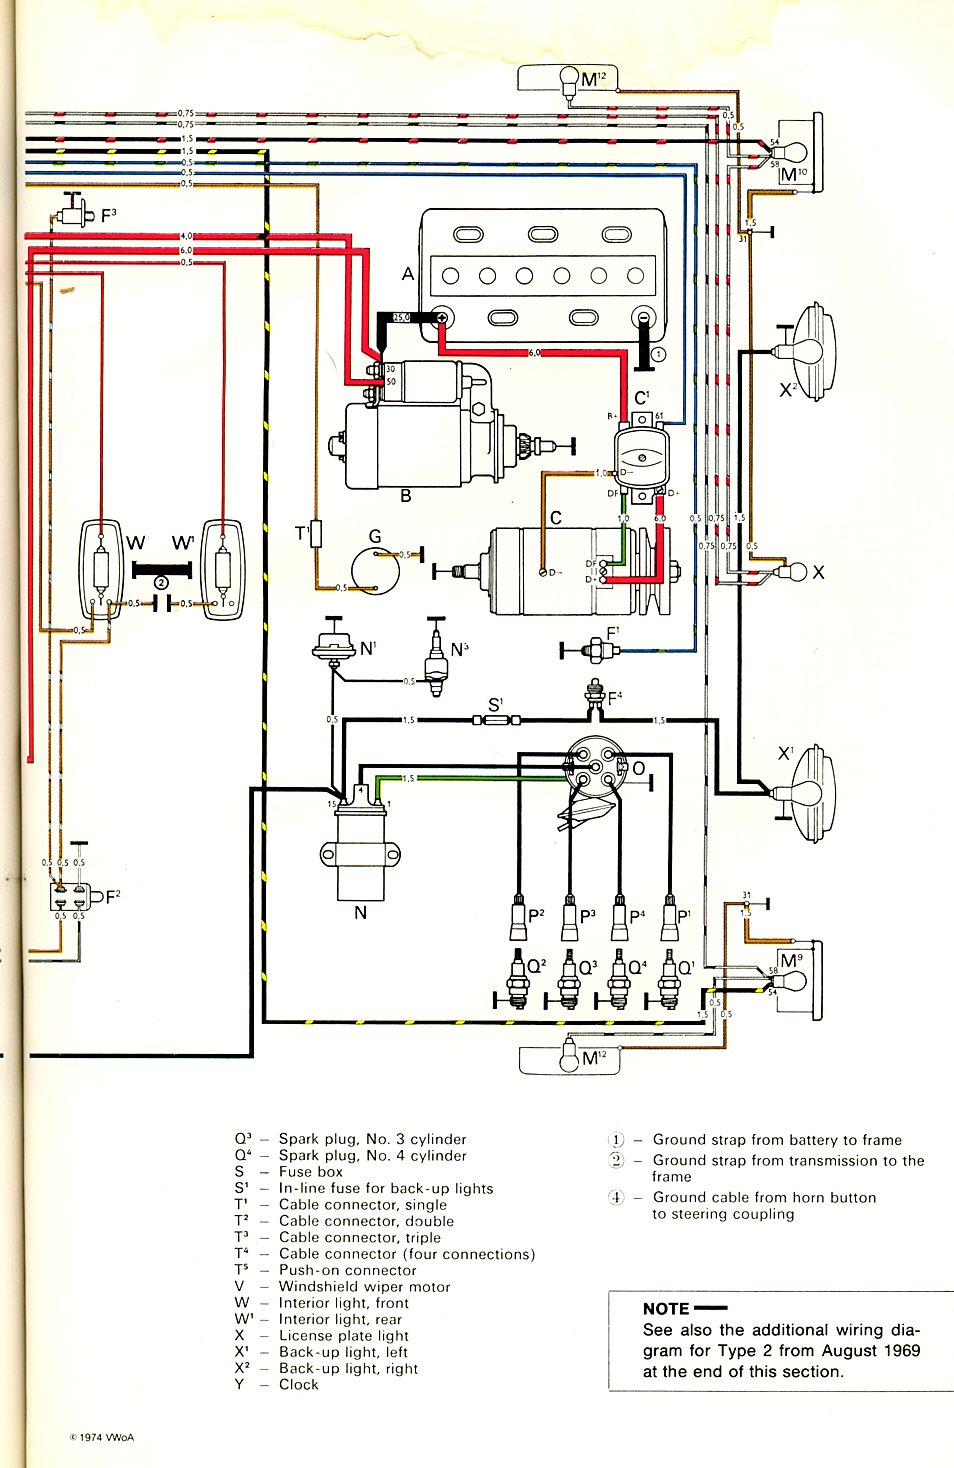 baybus_70b thesamba com type 2 wiring diagrams 1972 beetle wiring diagram at mifinder.co